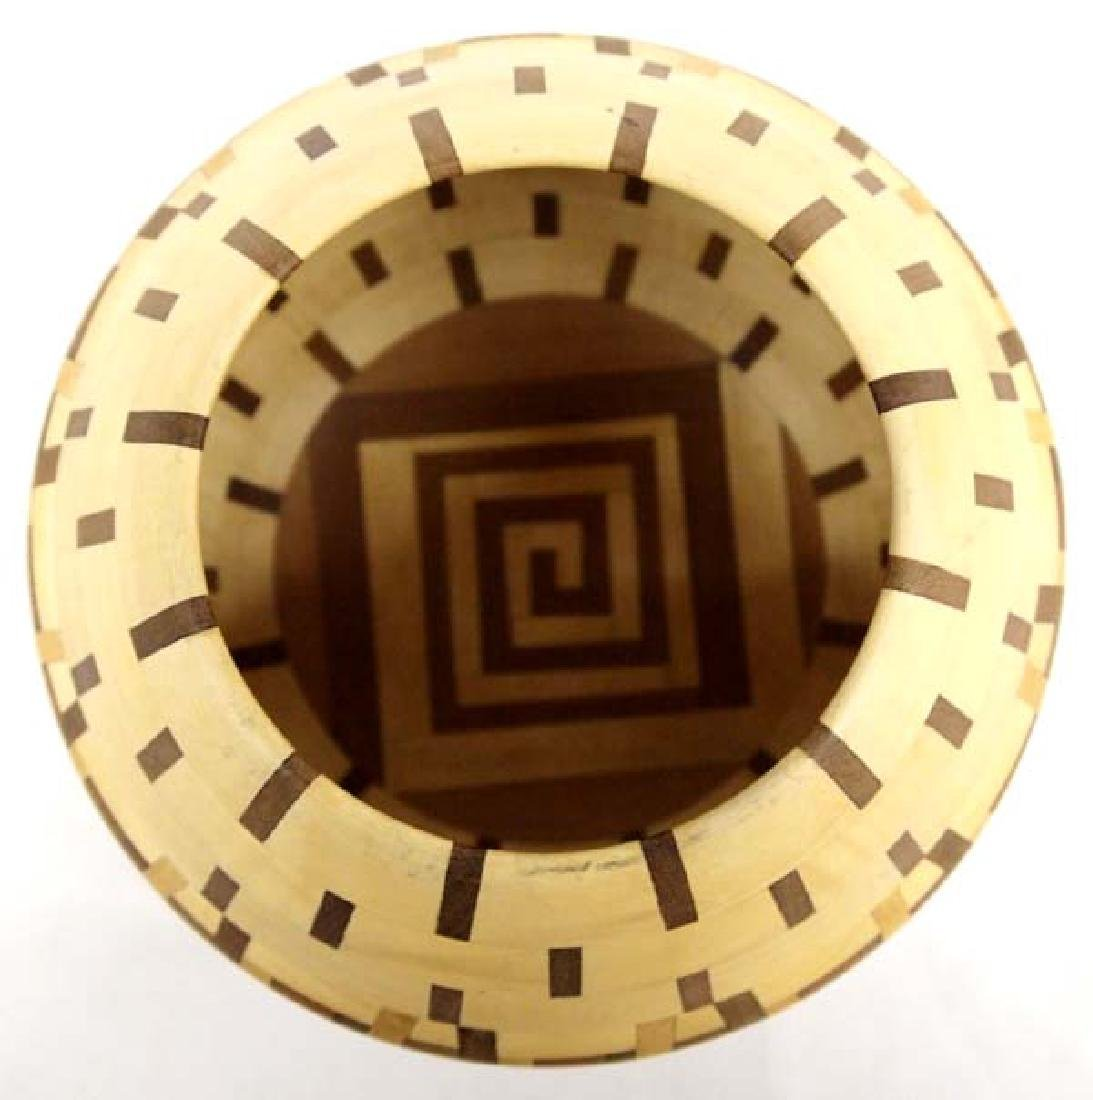 2004 Hand Crafted Inlay Wood Bowl by Walt Wyche - 2